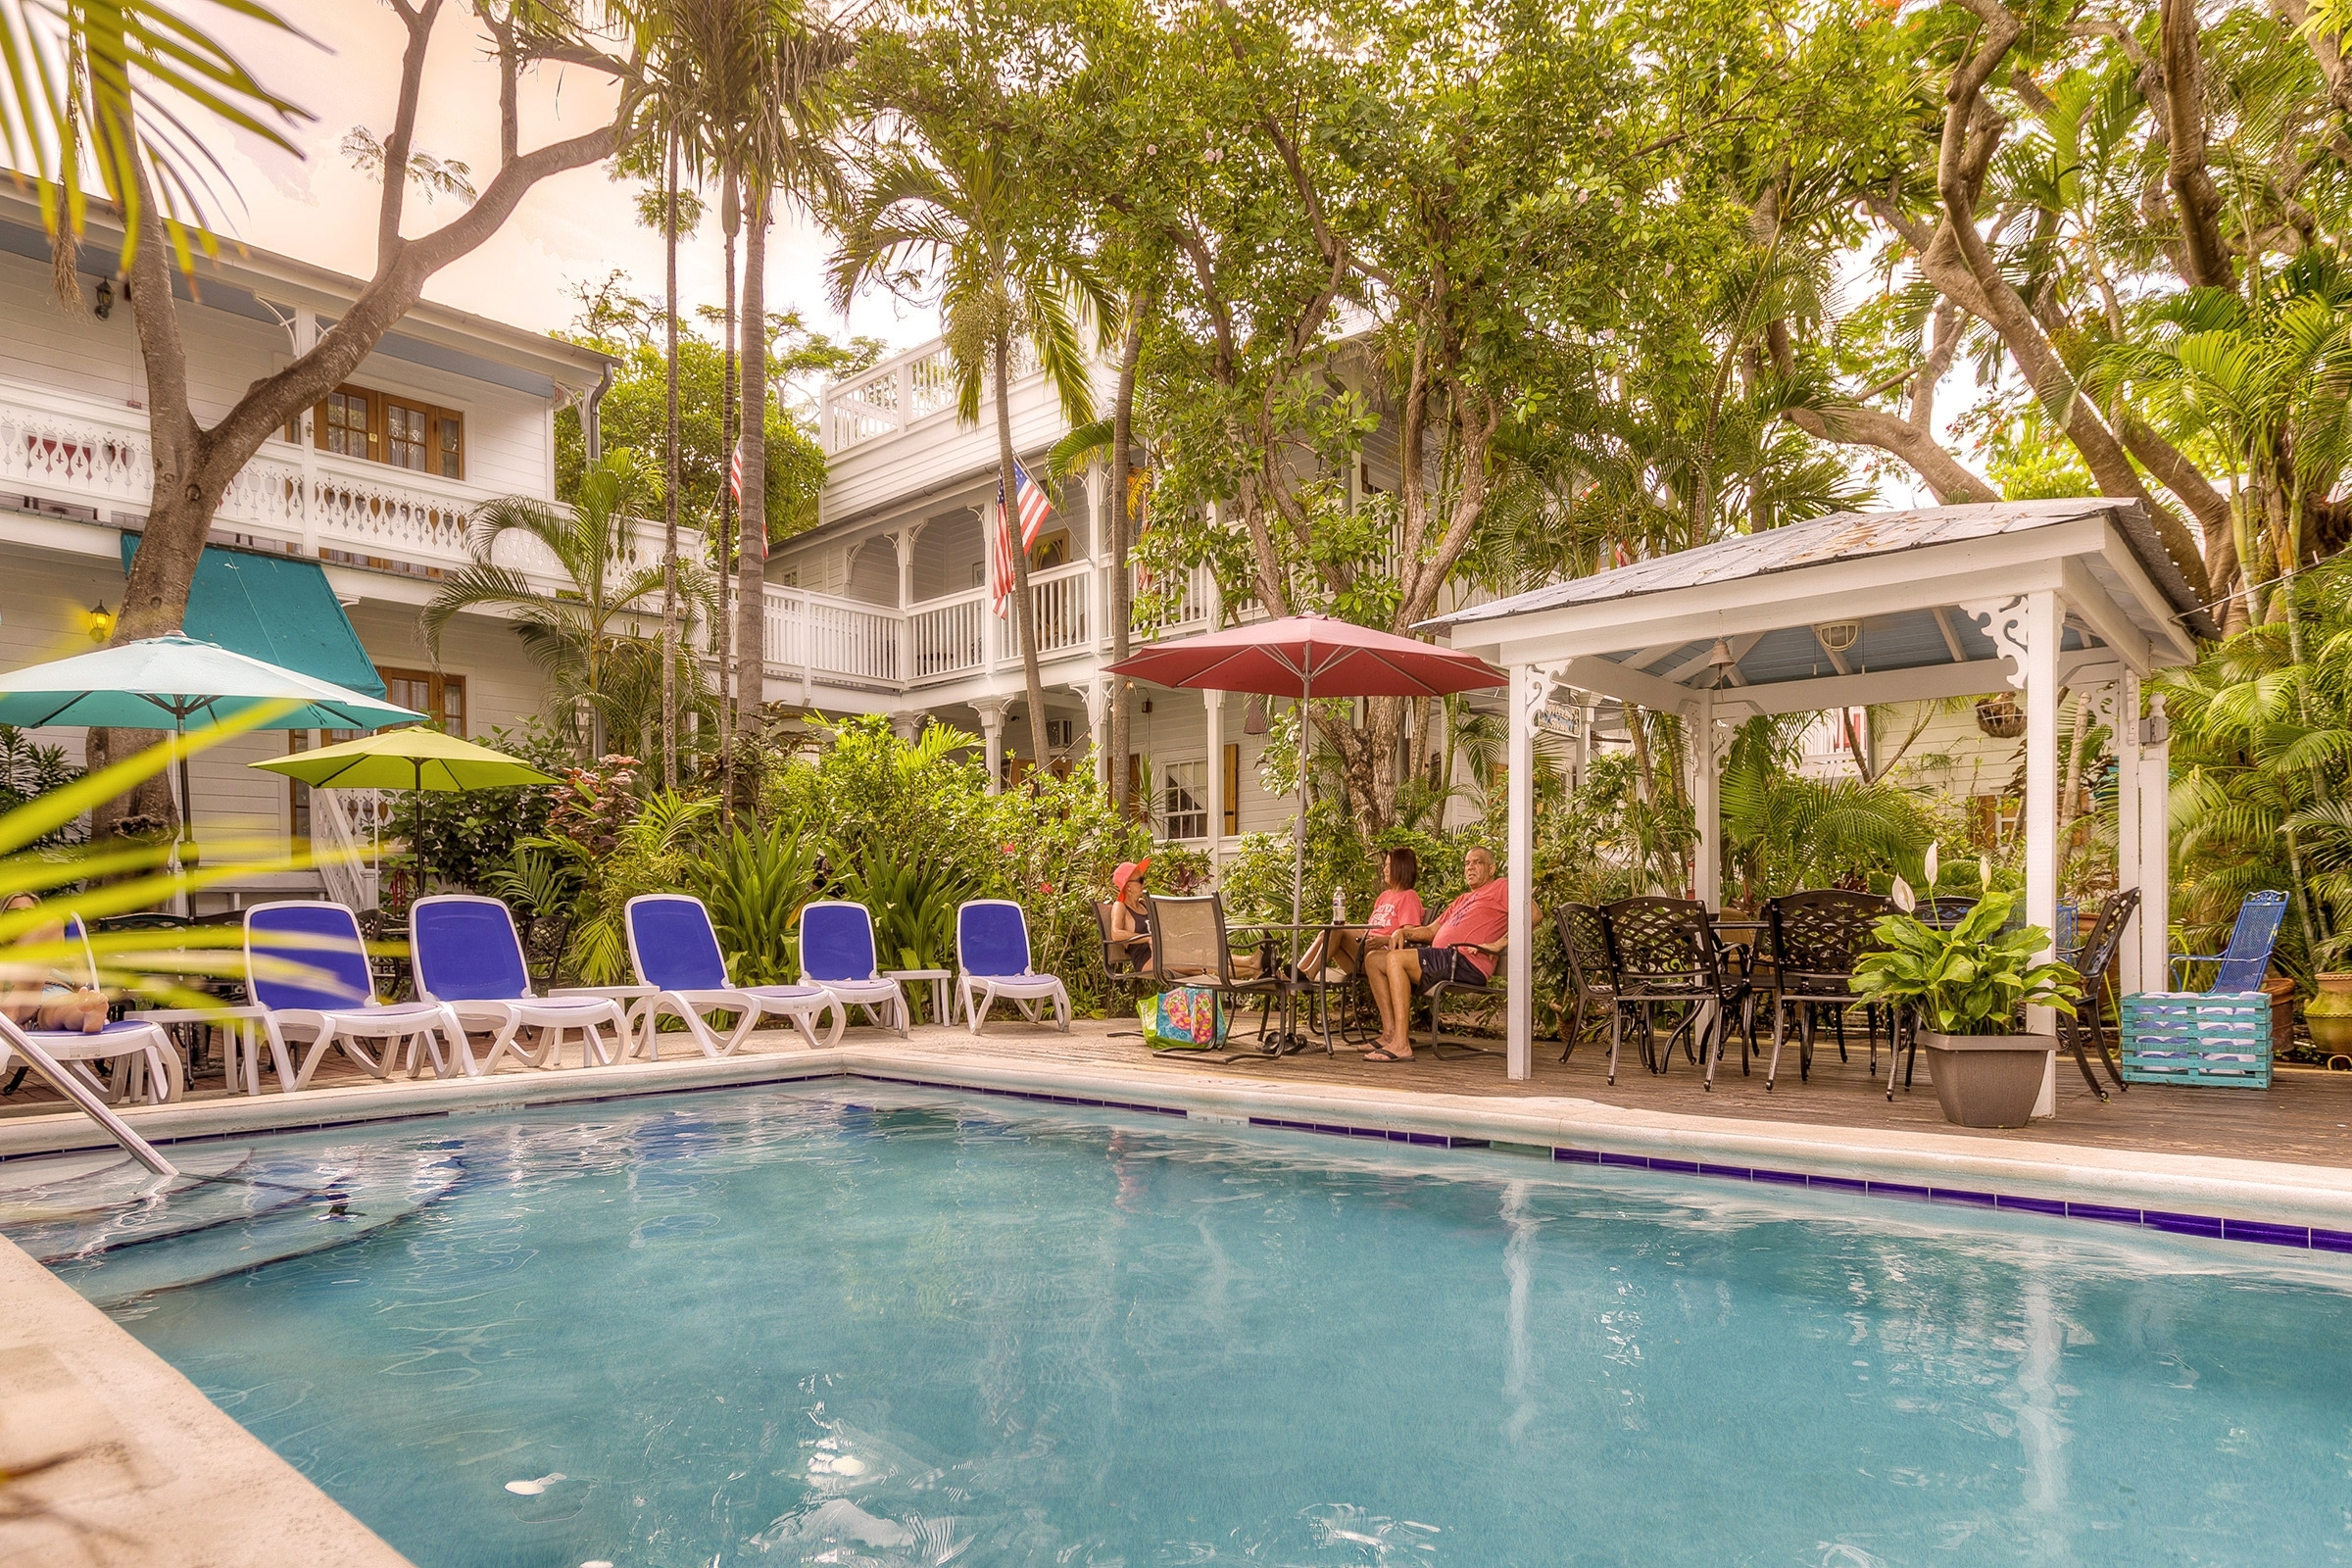 Key West Resort | Bed And Breakfast | Guesthouse | Old Town | Duval St regarding Garden House Hotel Key West